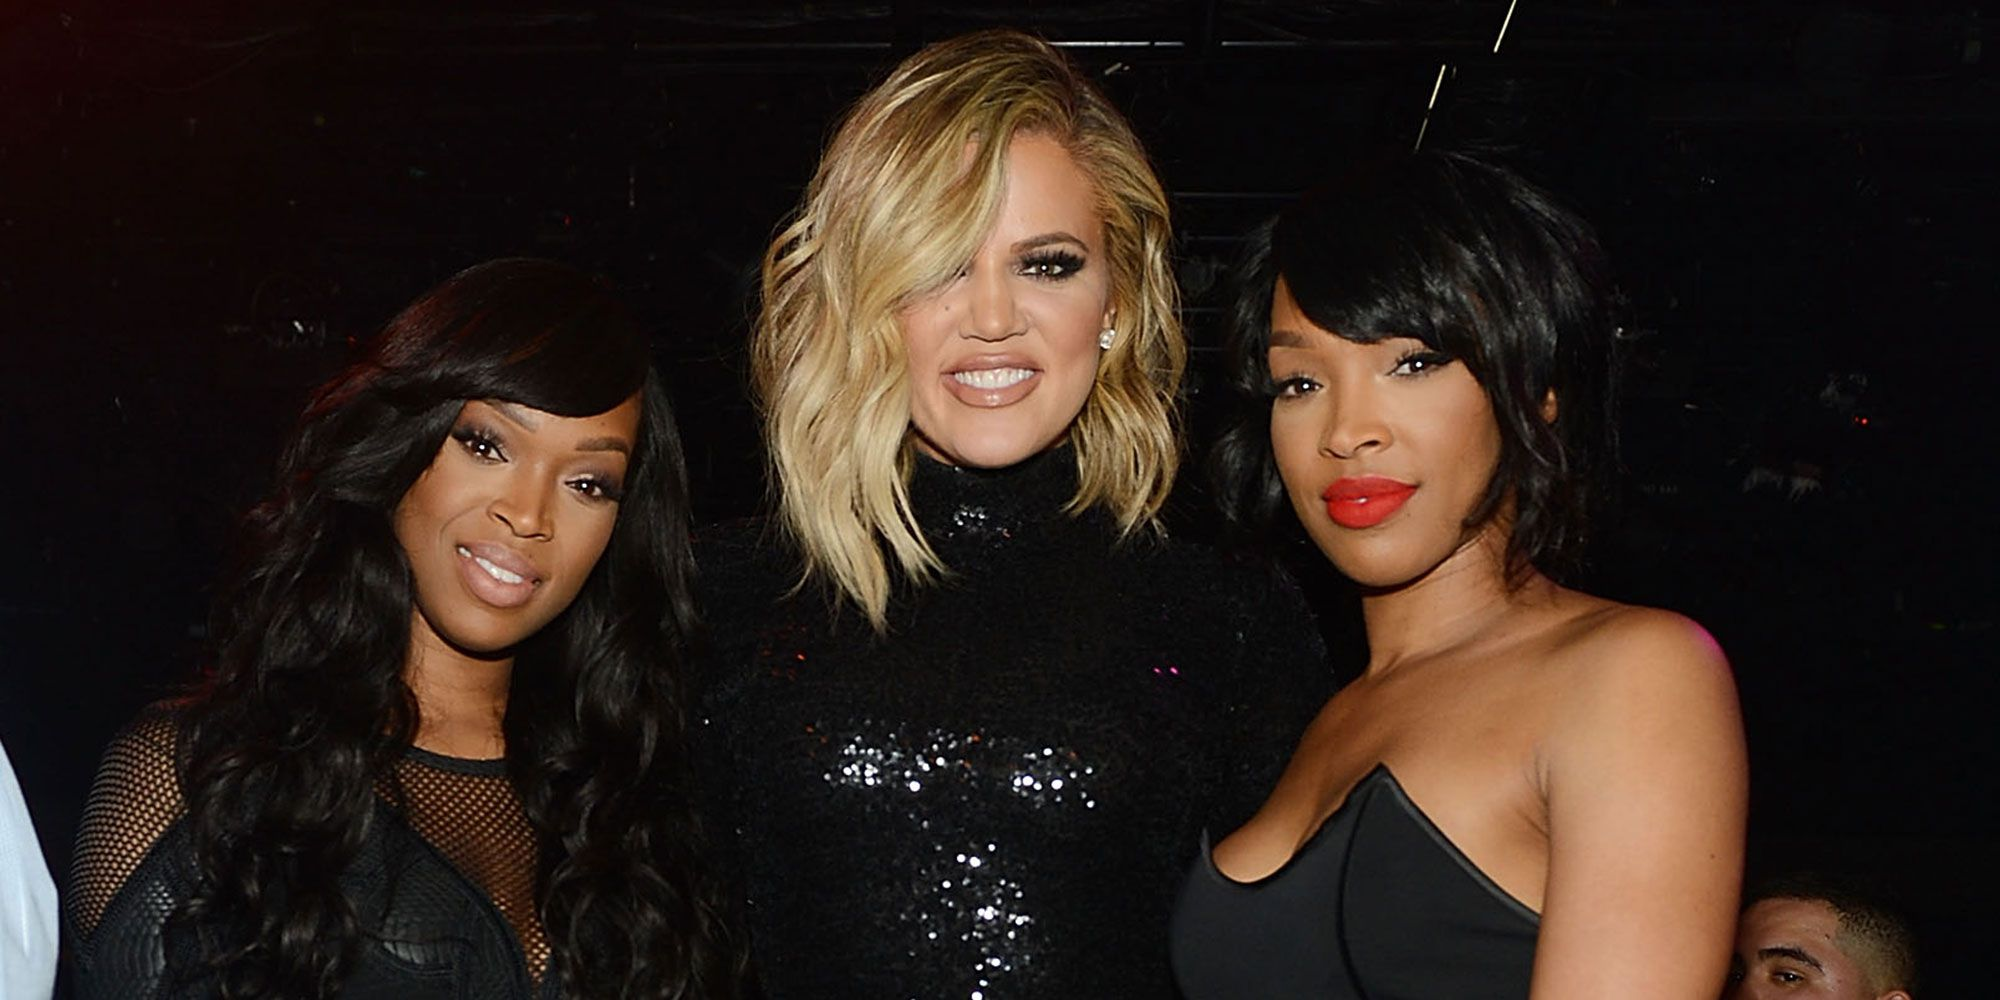 Khloe Malika and Khadijah